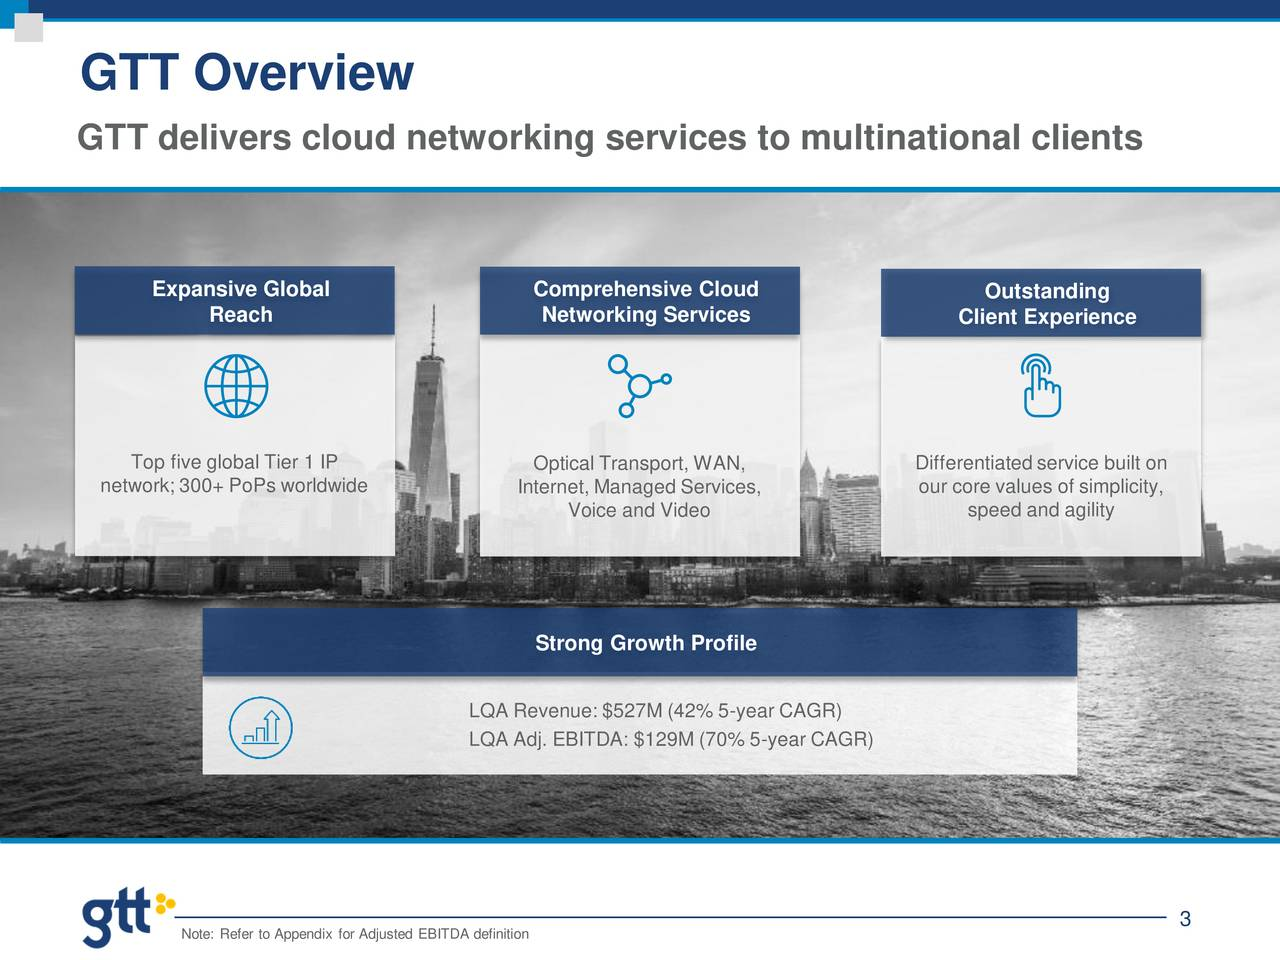 GTT delivers cloud networking services to multinational clients Expansive Global Comprehensive Cloud Outstanding Reach Networking Services Client Experience Top five global Tier 1 IP Optical Transport, WAN, Differentiated service built on network; 300+ PoPs worldwide Internet, Managed Services, our core values of simplicity, Voice and Video speed and agility Strong Growth Profile LQA Revenue: $527M (42% 5-year CAGR) LQA Adj. EBITDA: $129M (70% 5-year CAGR) 3 Note: Refer to Appendix for Adjusted EBITDA definition